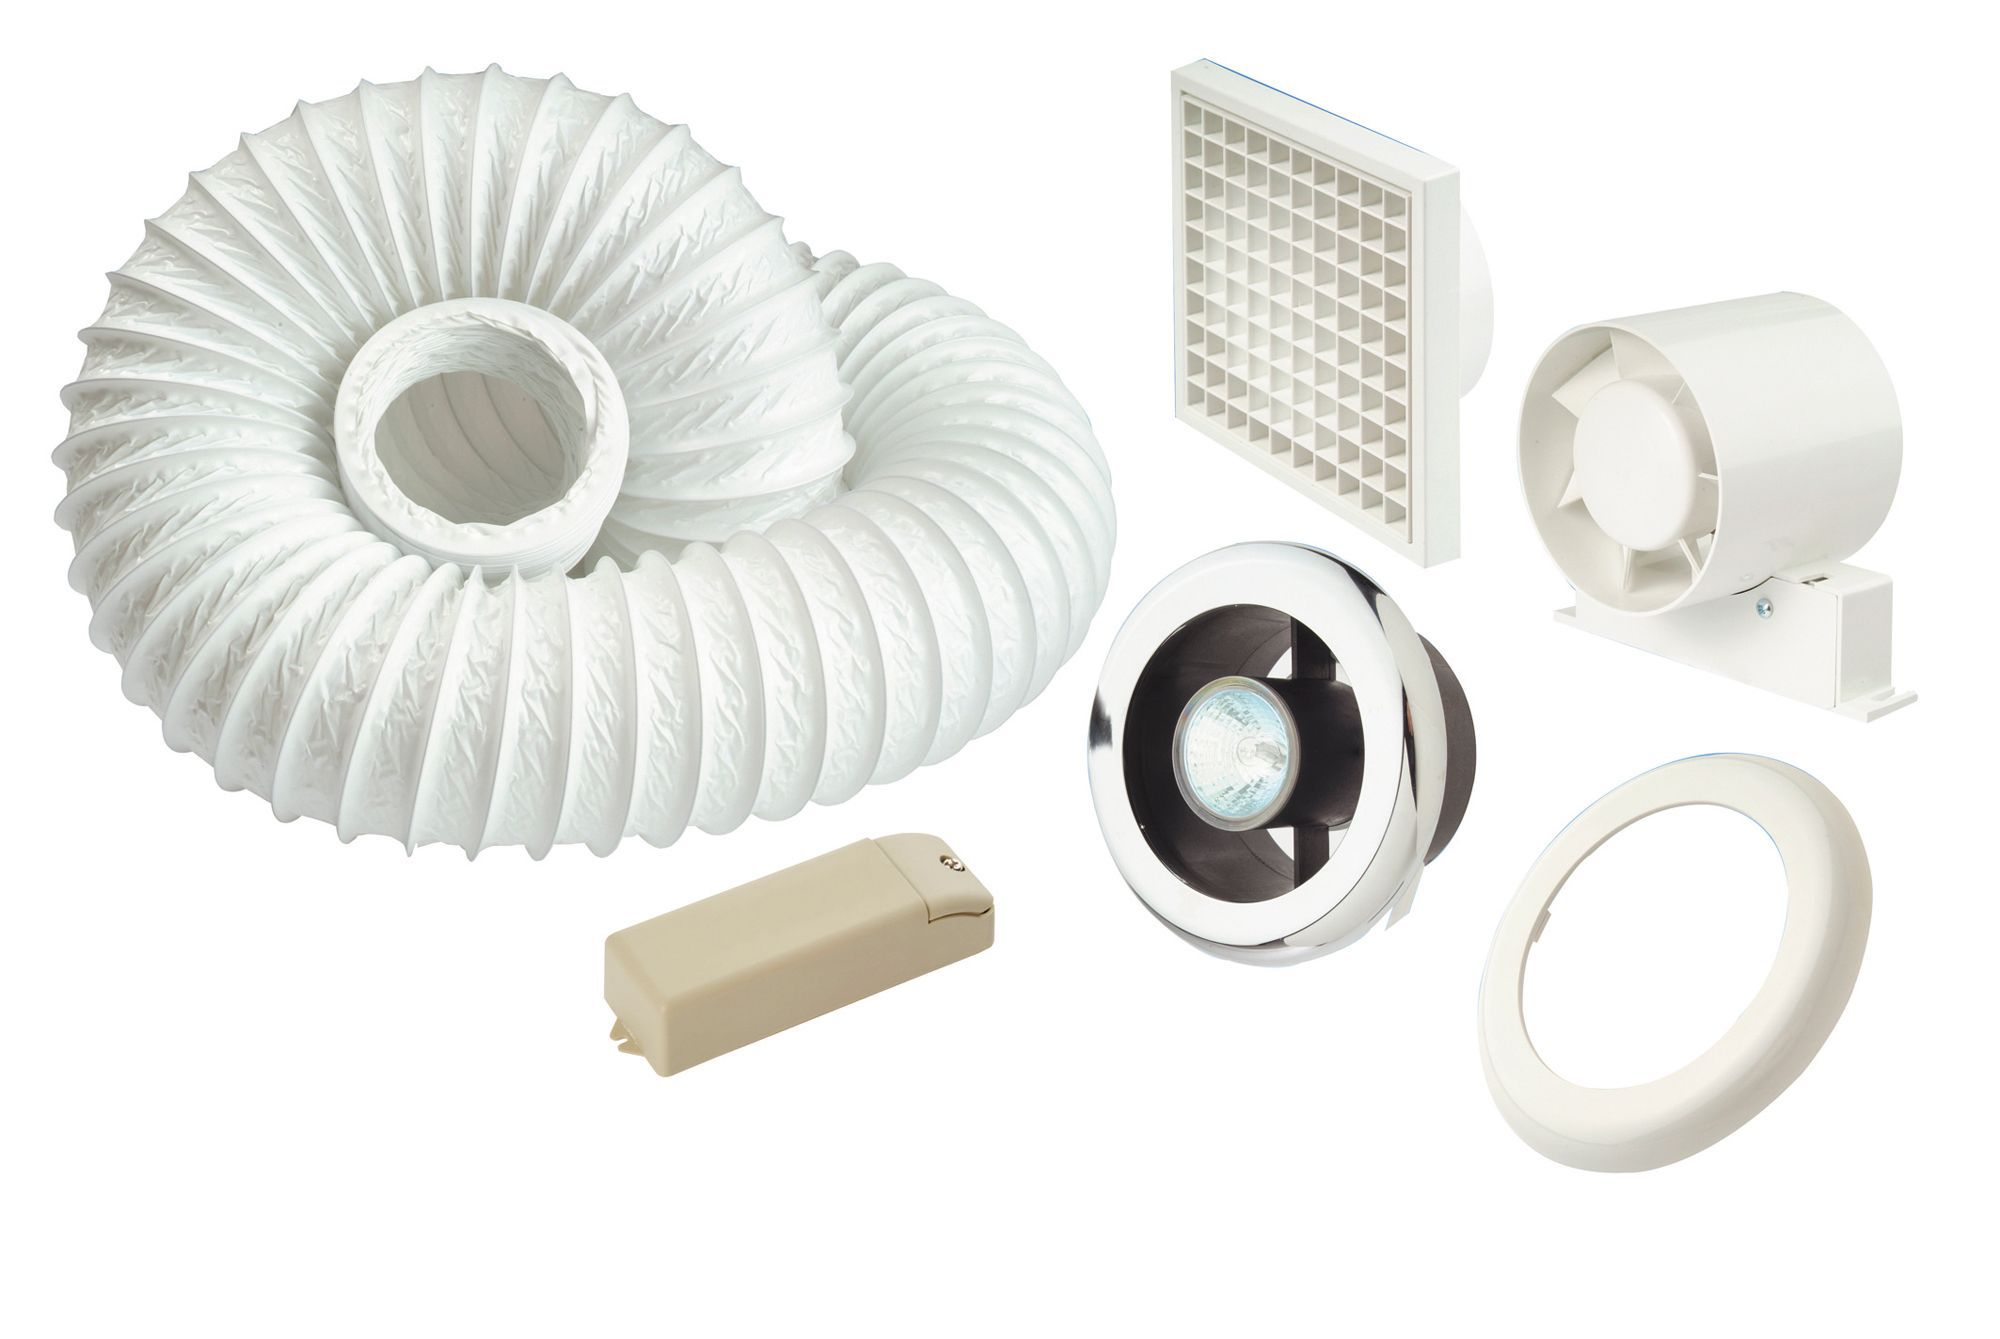 Bathroom extractor fans advice - Manrose White Shower Light Extractor Fan Kit Departments Diy At B Q